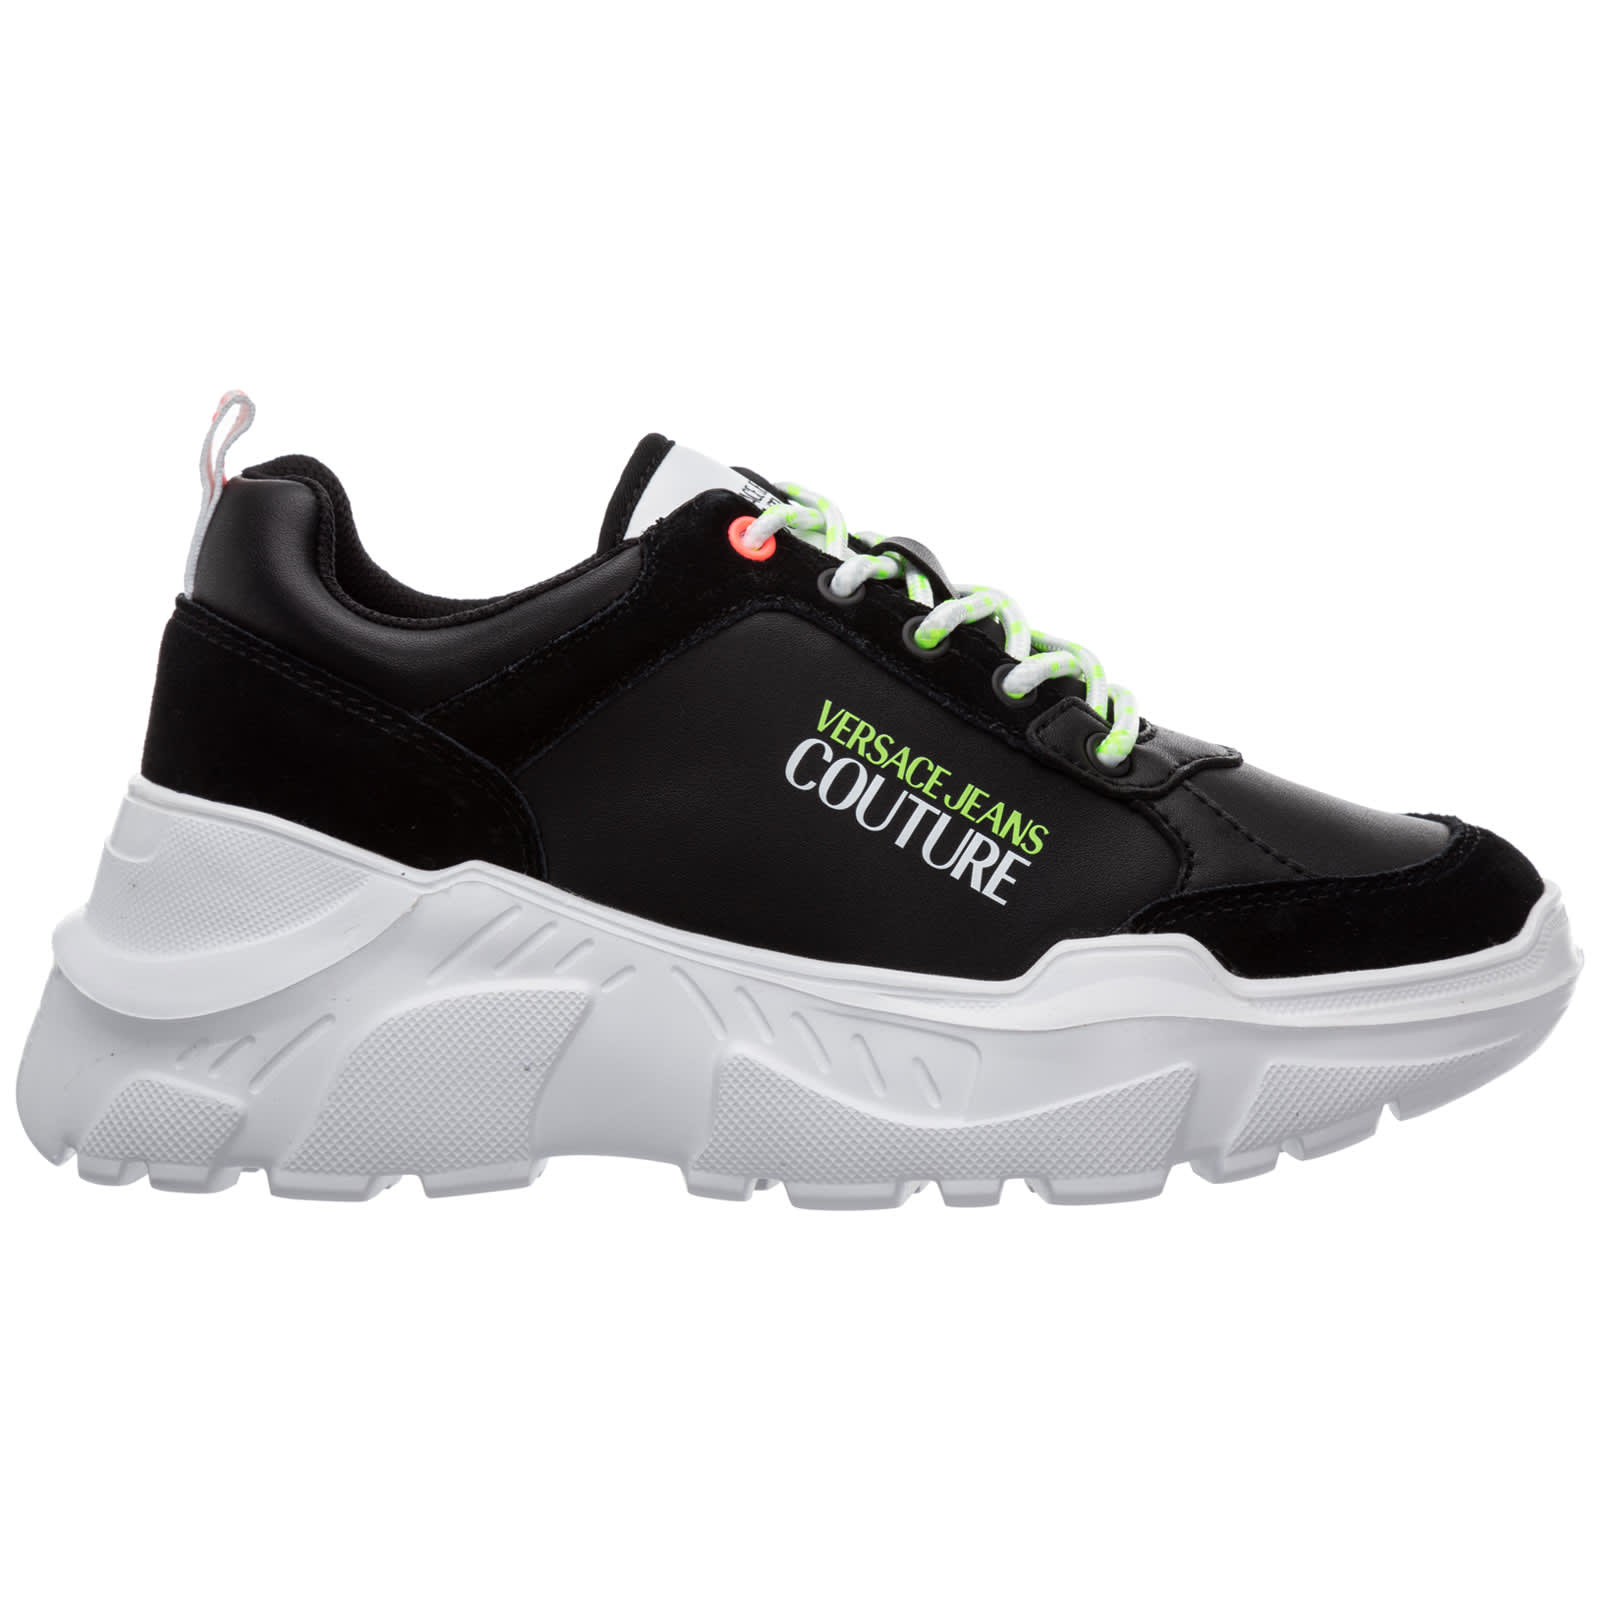 Versace Jeans Couture SPPED SNEAKERS